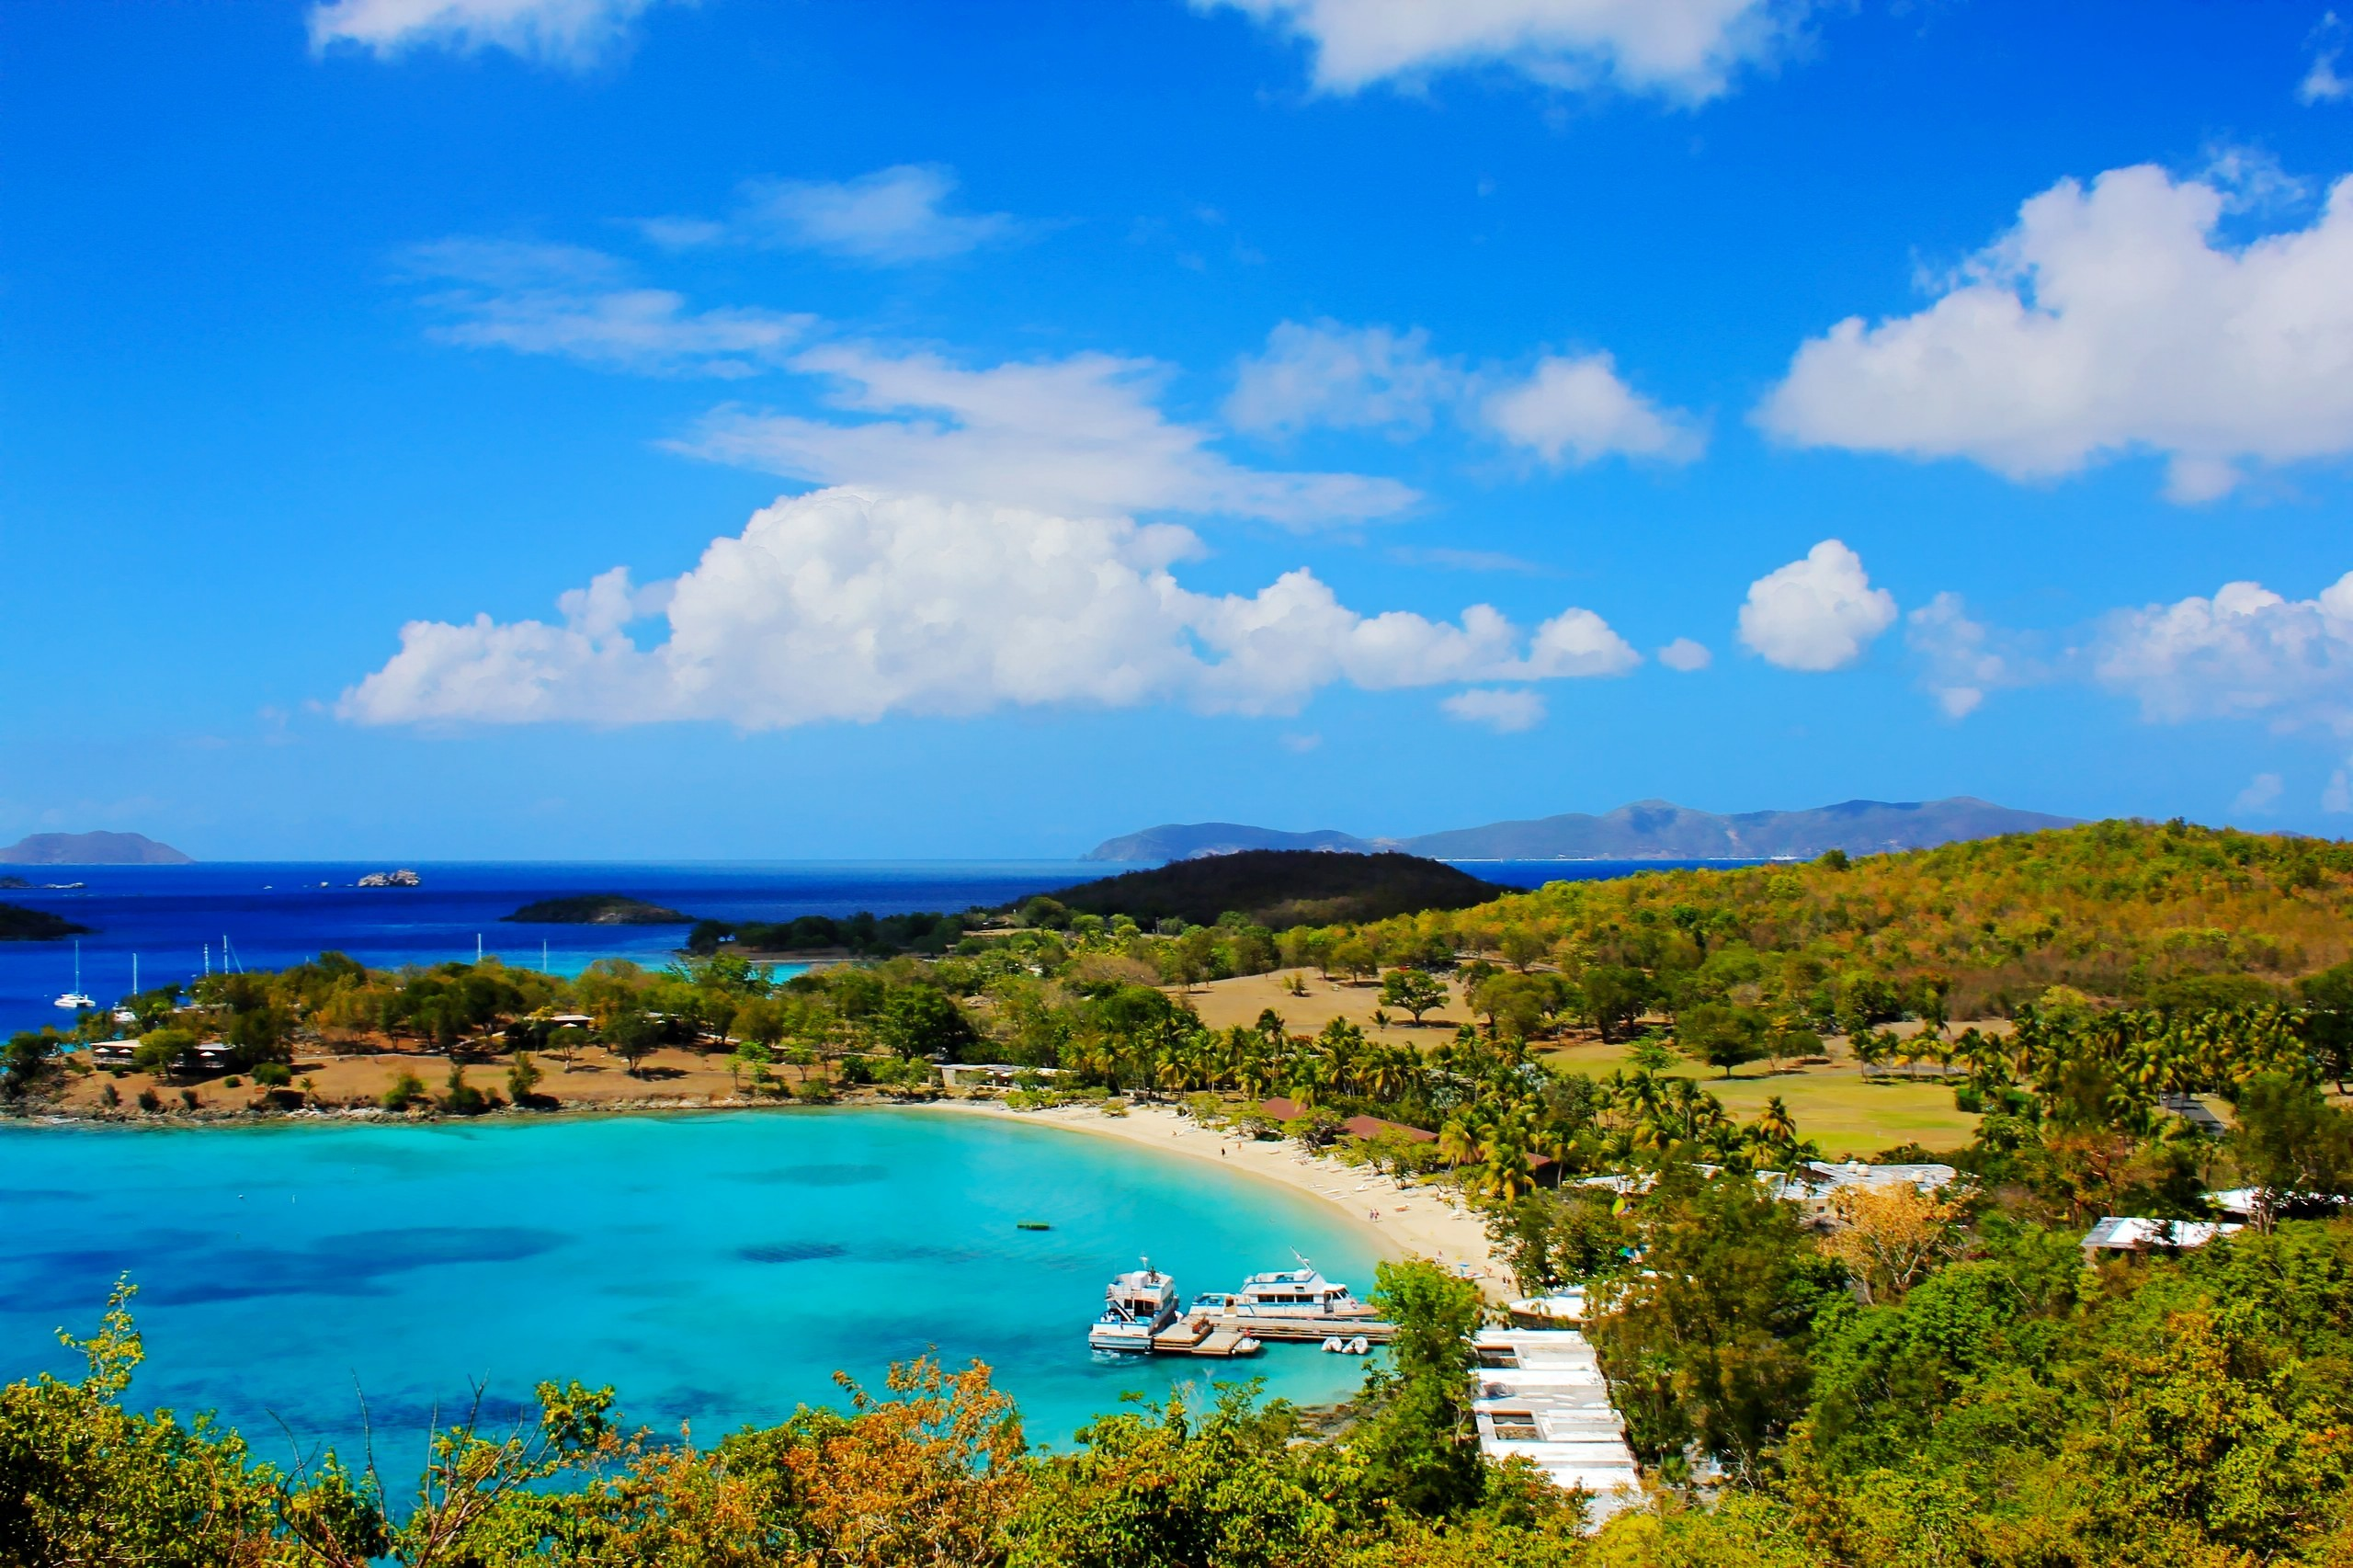 Caribbean islands wallpapers 59 background pictures - Caribbean islands 3d wallpaper ...